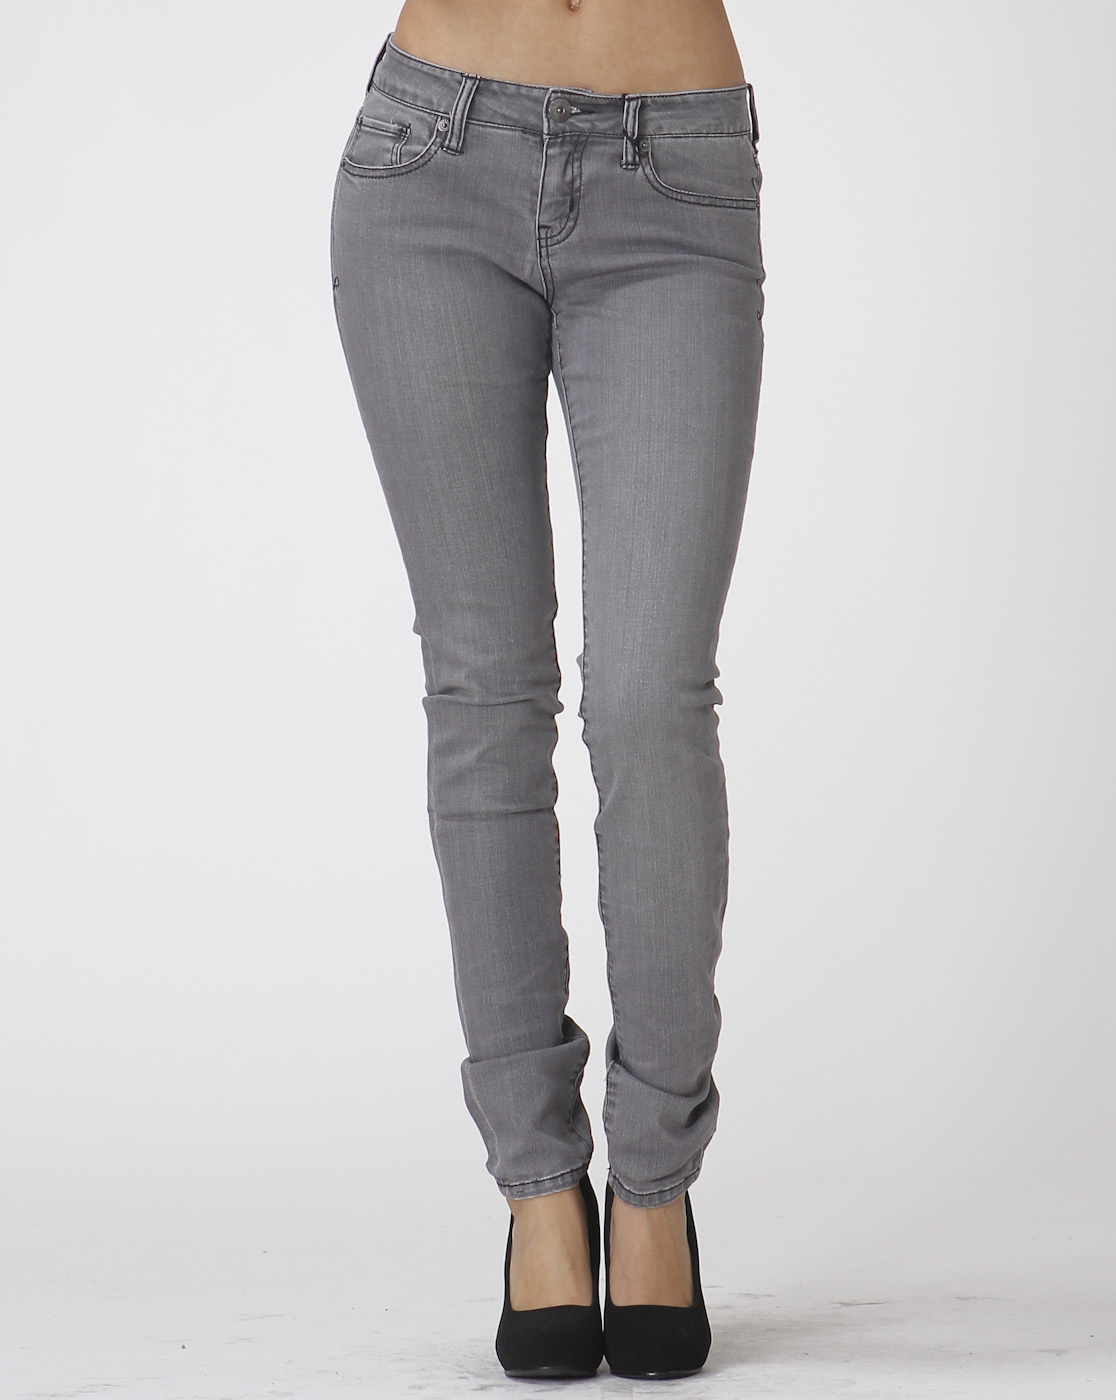 Grey Denim Stretch Skinny Jeans, Gray Stretch Skinny Jeans, Scarlet Boulevard